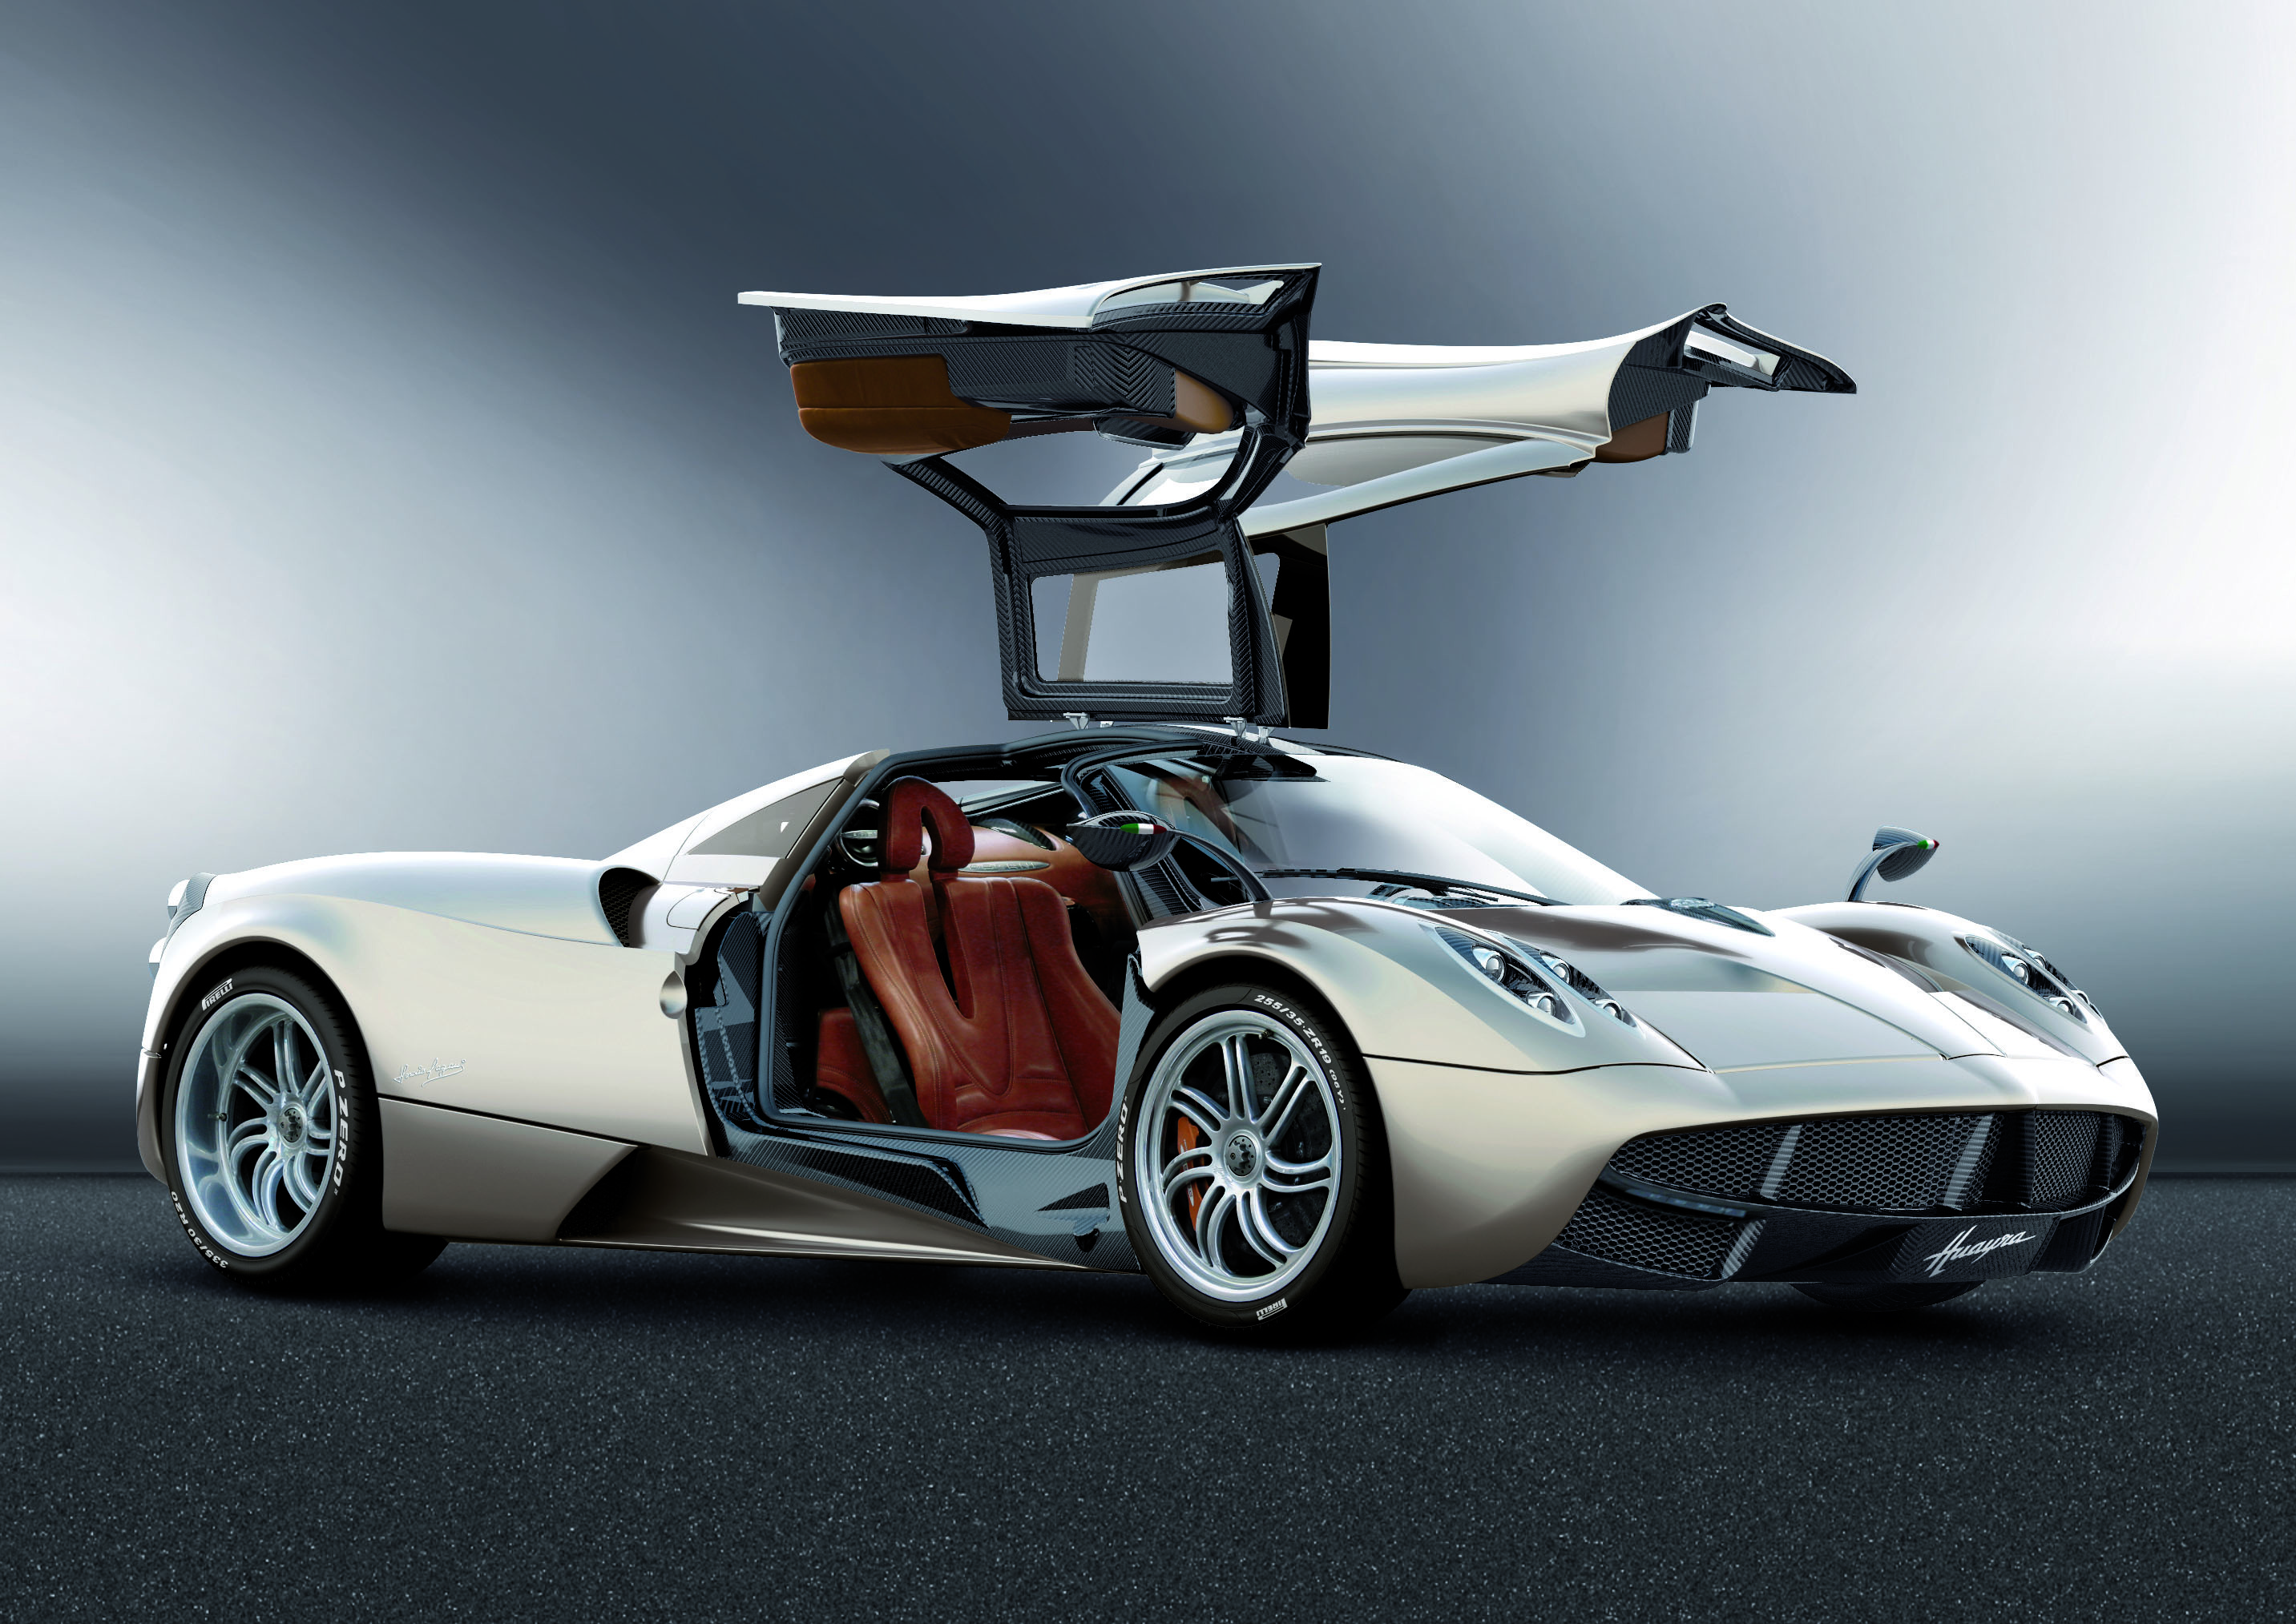 144886 download wallpaper Cars, Pagani, Pagani Huayra, Side View, Auto screensavers and pictures for free